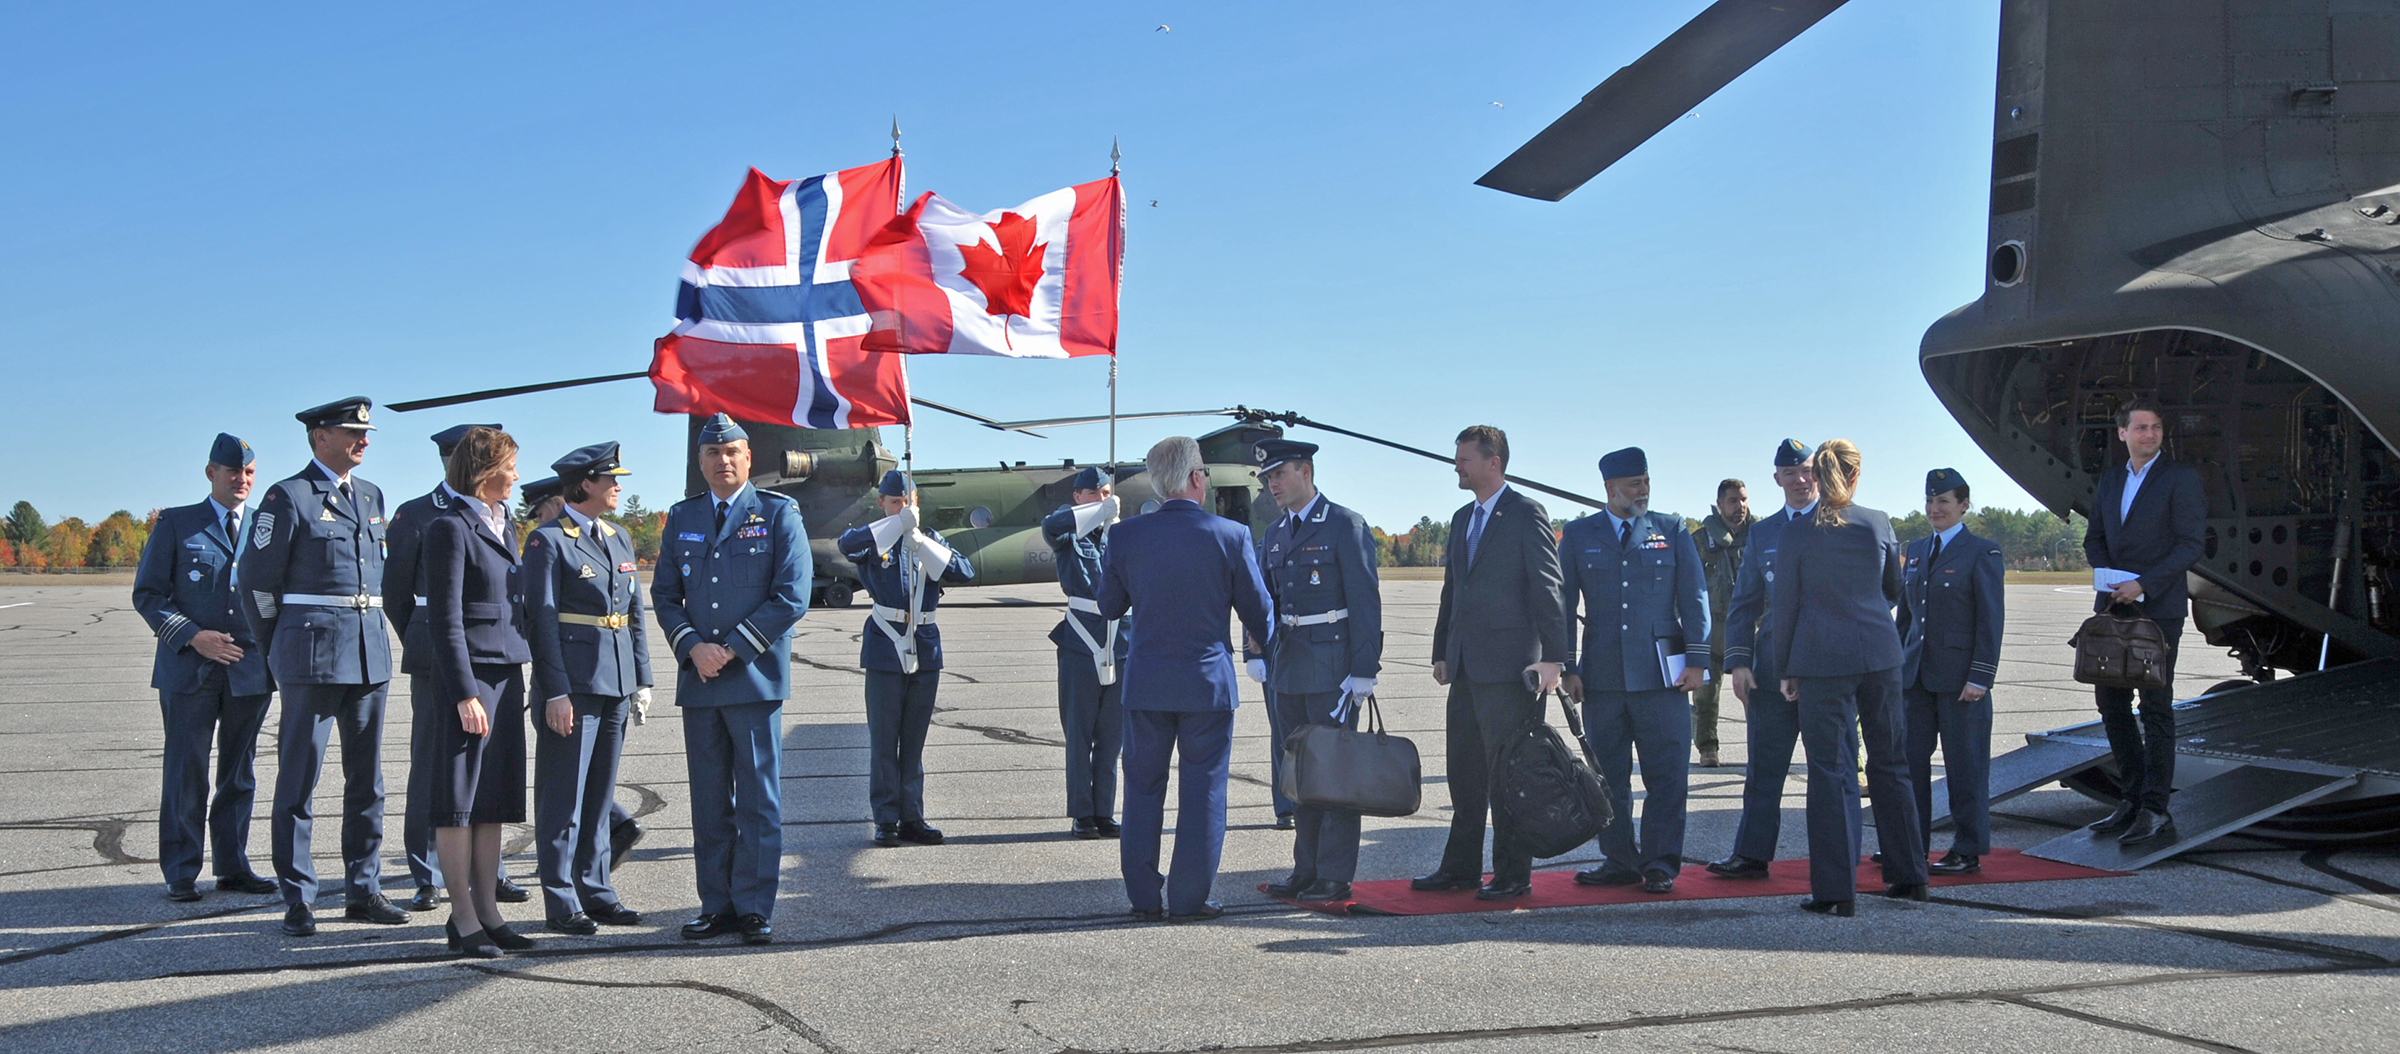 On October 11, 2019, Norwegian consul general Marianne Kortzinsky and Muskoka District vice-chair John W. Klinck welcome the head of the Norwegian Air Force and the deputy commander of the RCAF, Major-General Blaise Frawley, as well as other RCAF military personnel to Muskoka Airport to celebrate the 75th anniversary of the Royal Norwegian Air Force. PHOTO: Lieutenant Nora Amrane